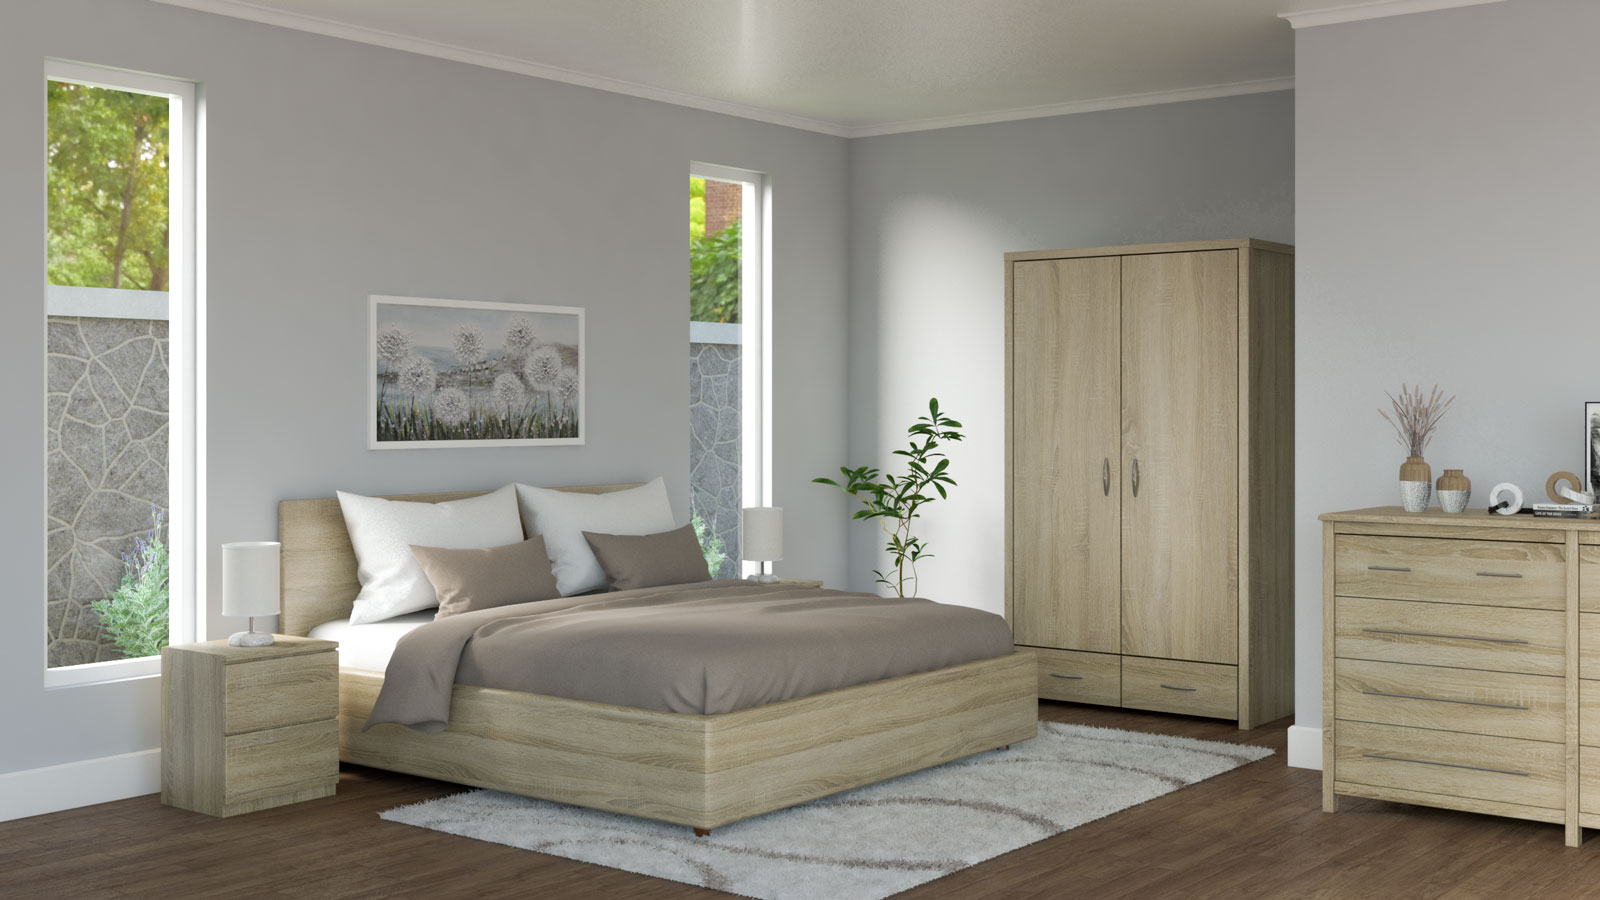 White and brown bedding with oak bedroom furniture